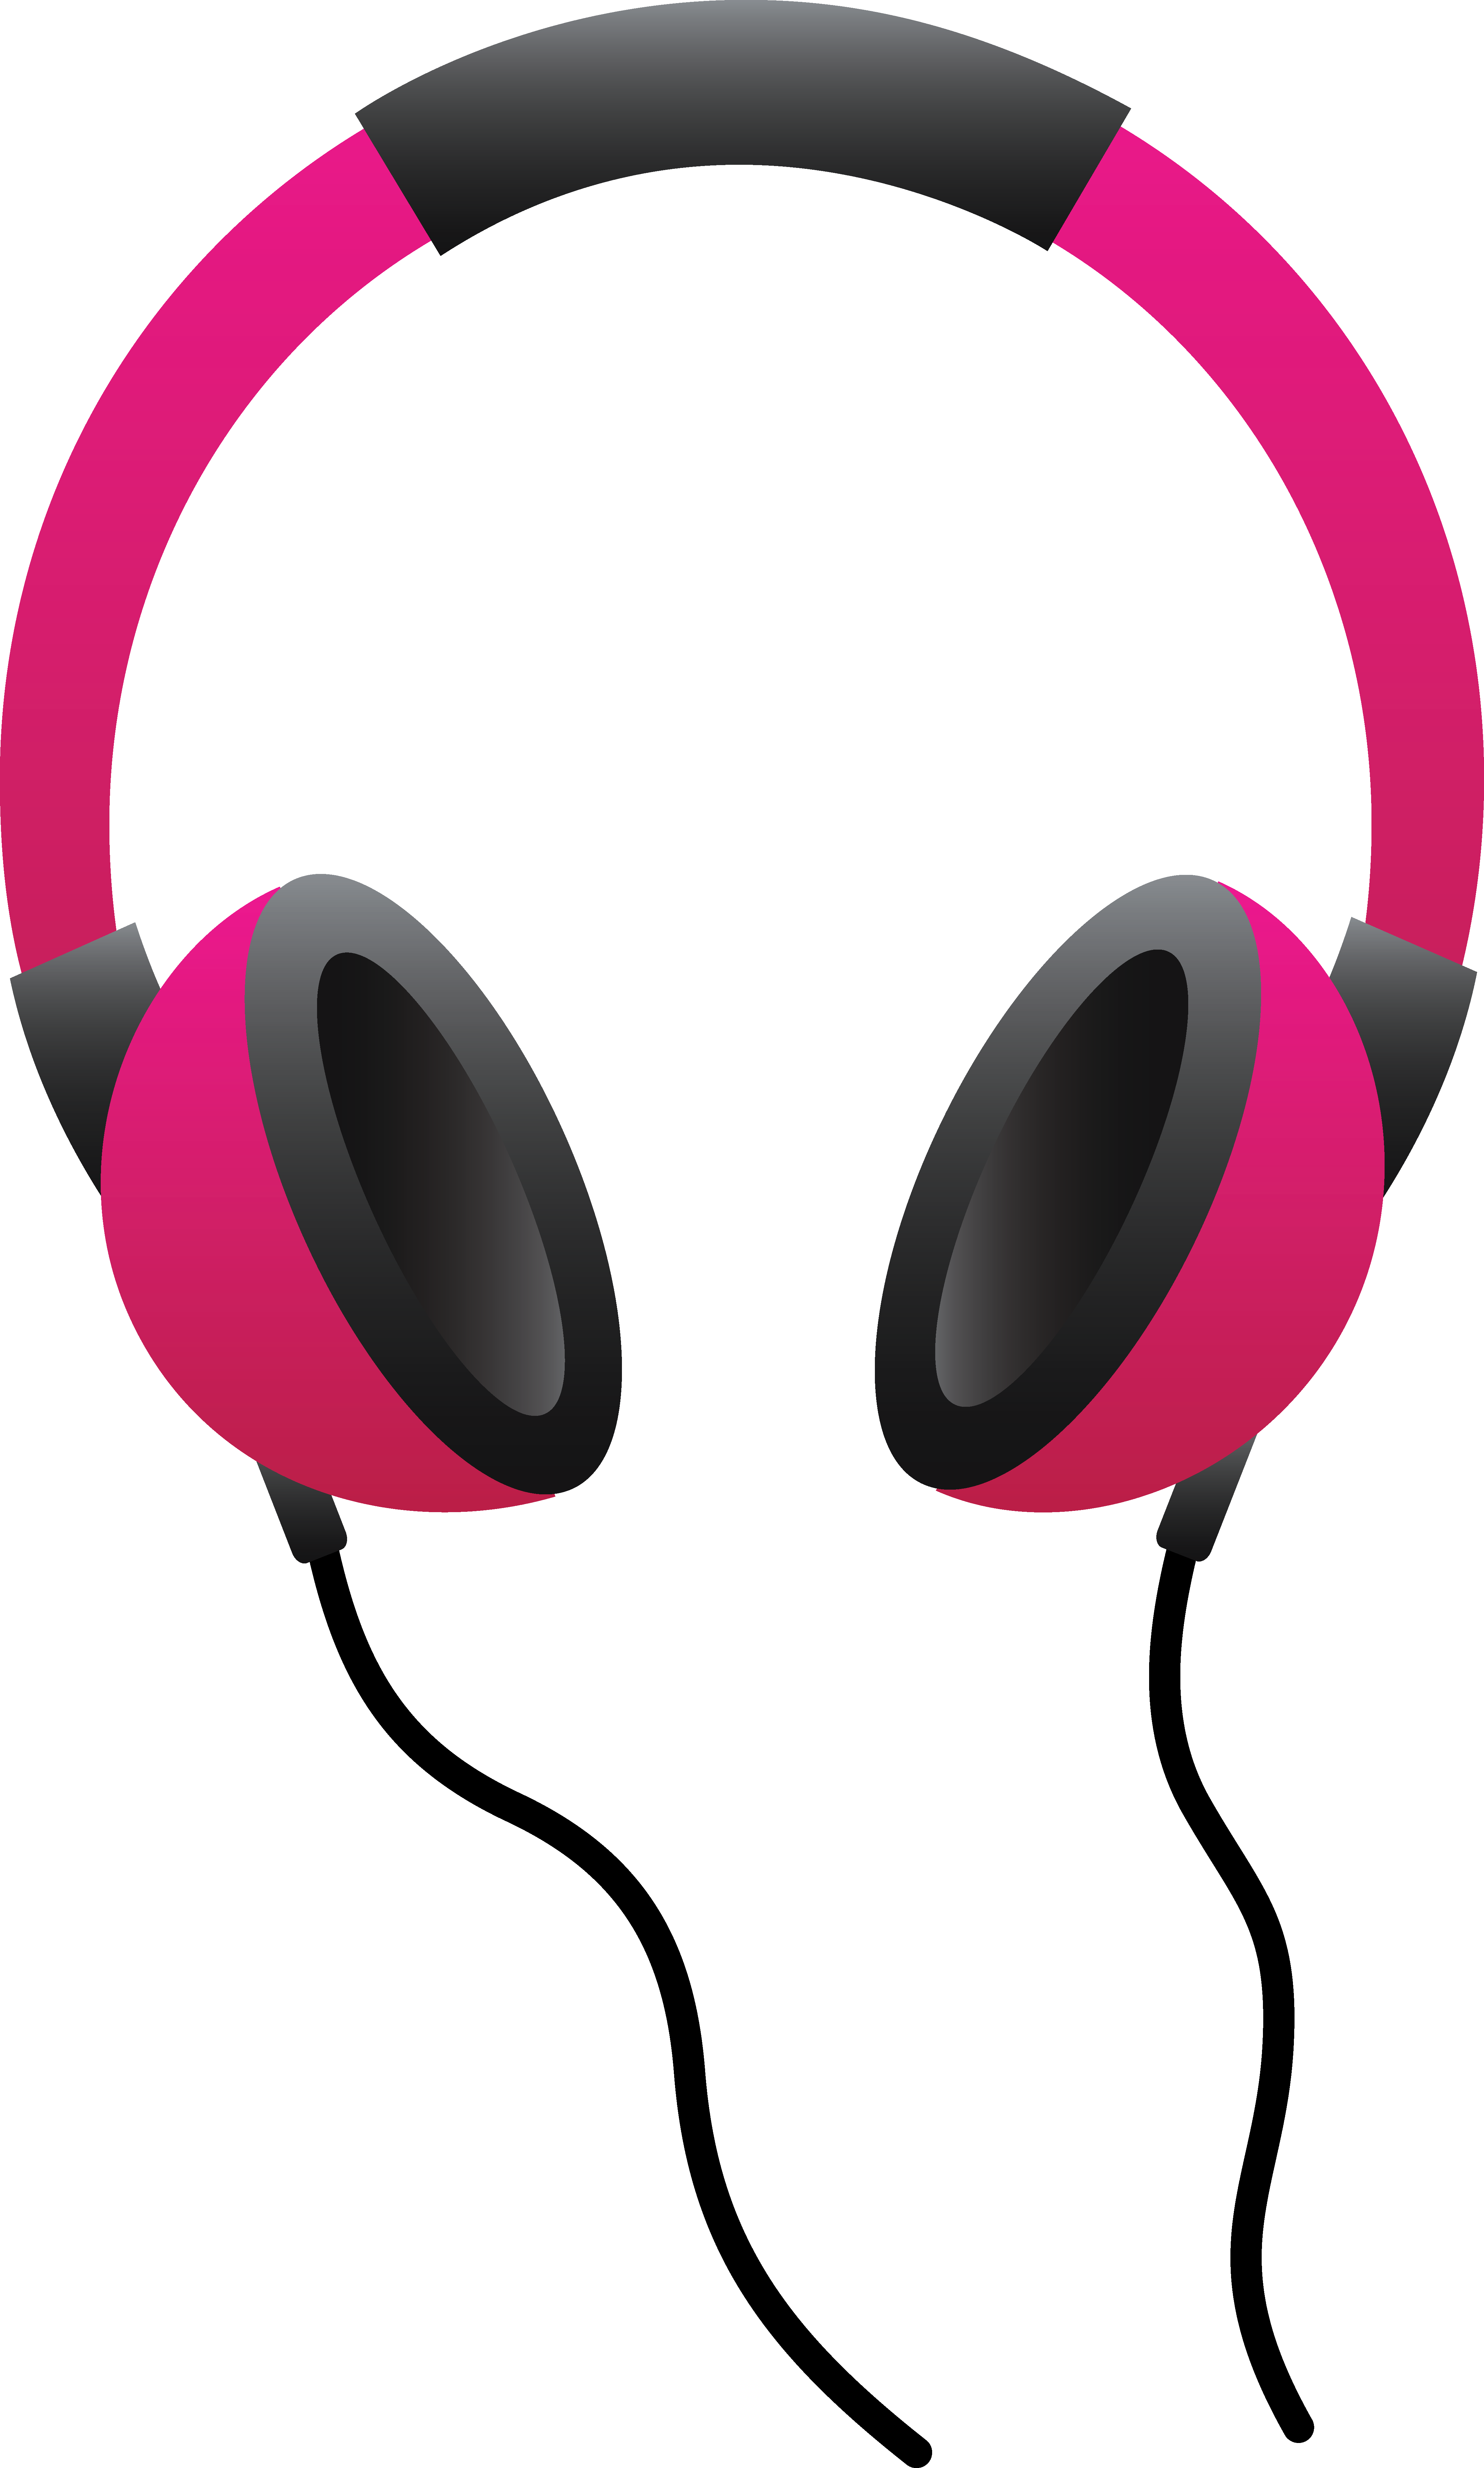 Beats clipart music headset Clipart 20clipart Clipart ipod%20clipart Images